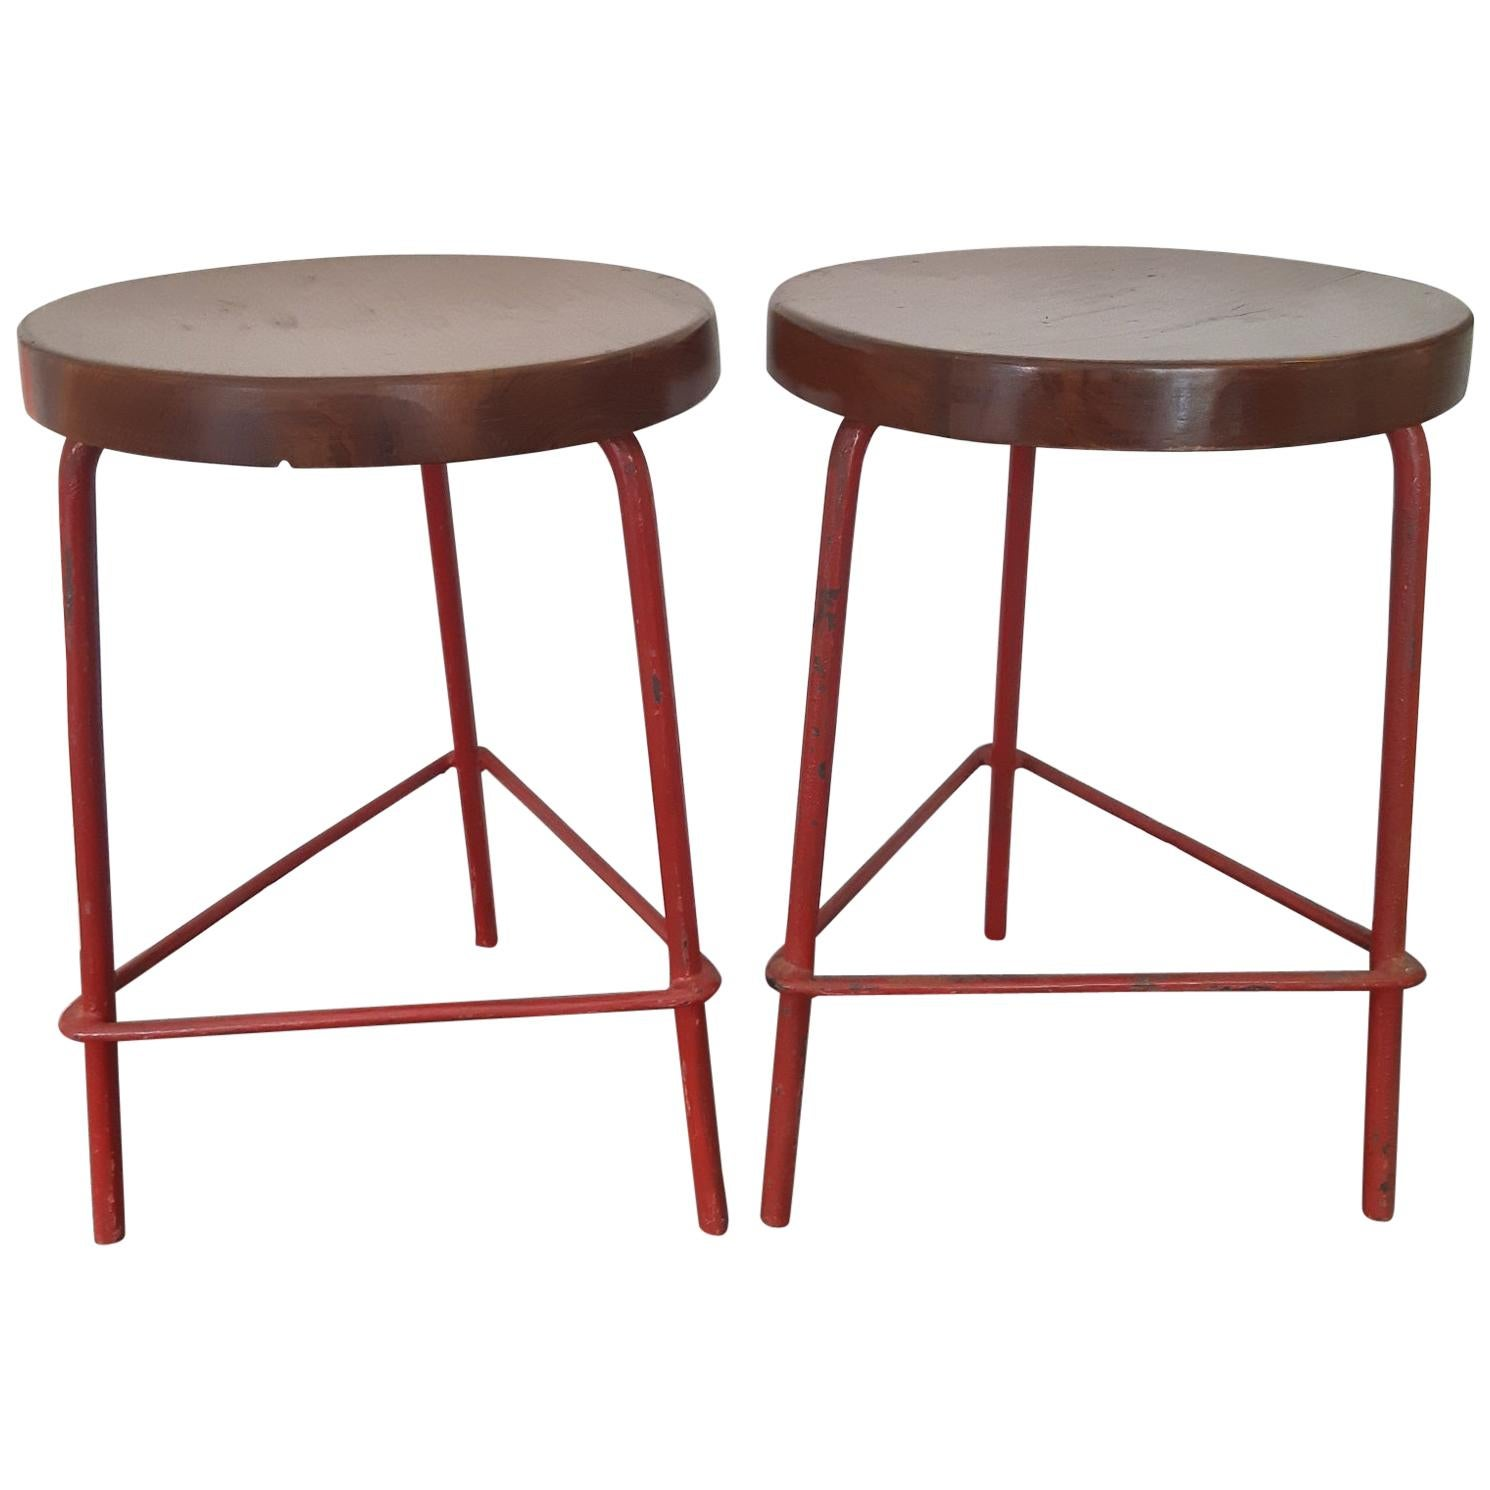 Pair of Pierre Jeanneret Stools, 1960s, Chandigarh